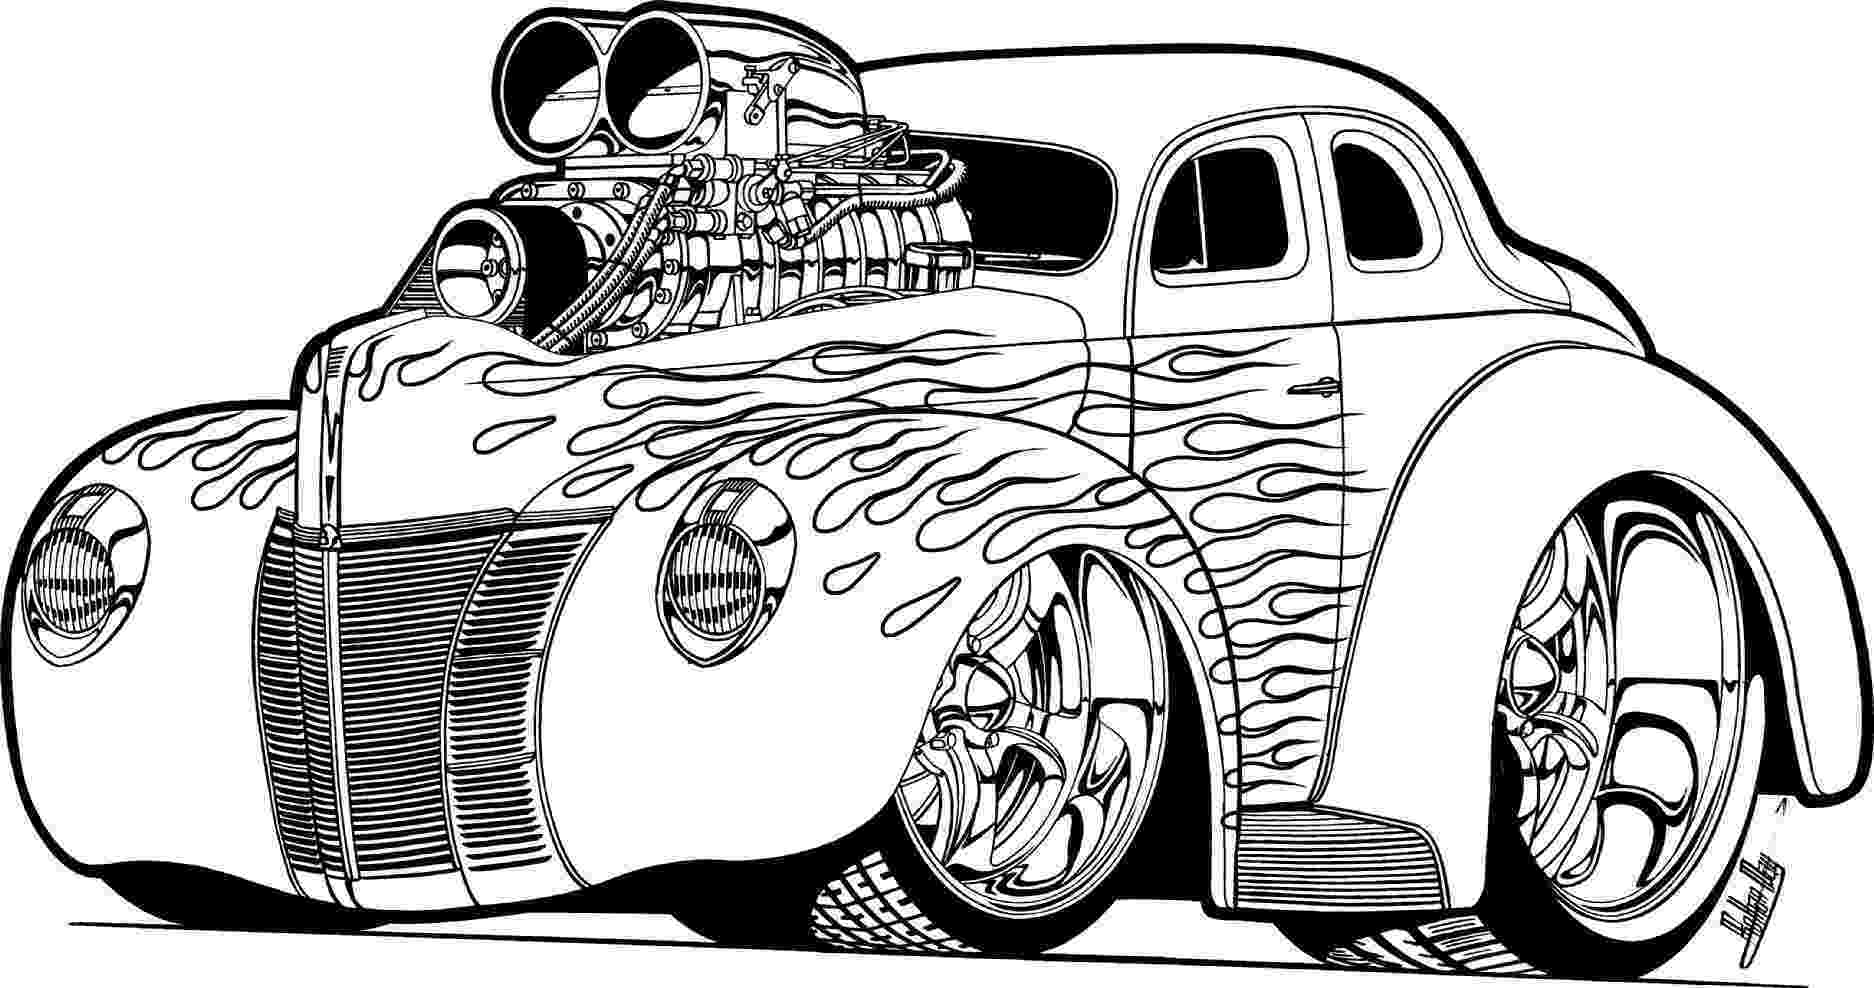 car and truck coloring pages container truck coloring page pages truck car coloring and